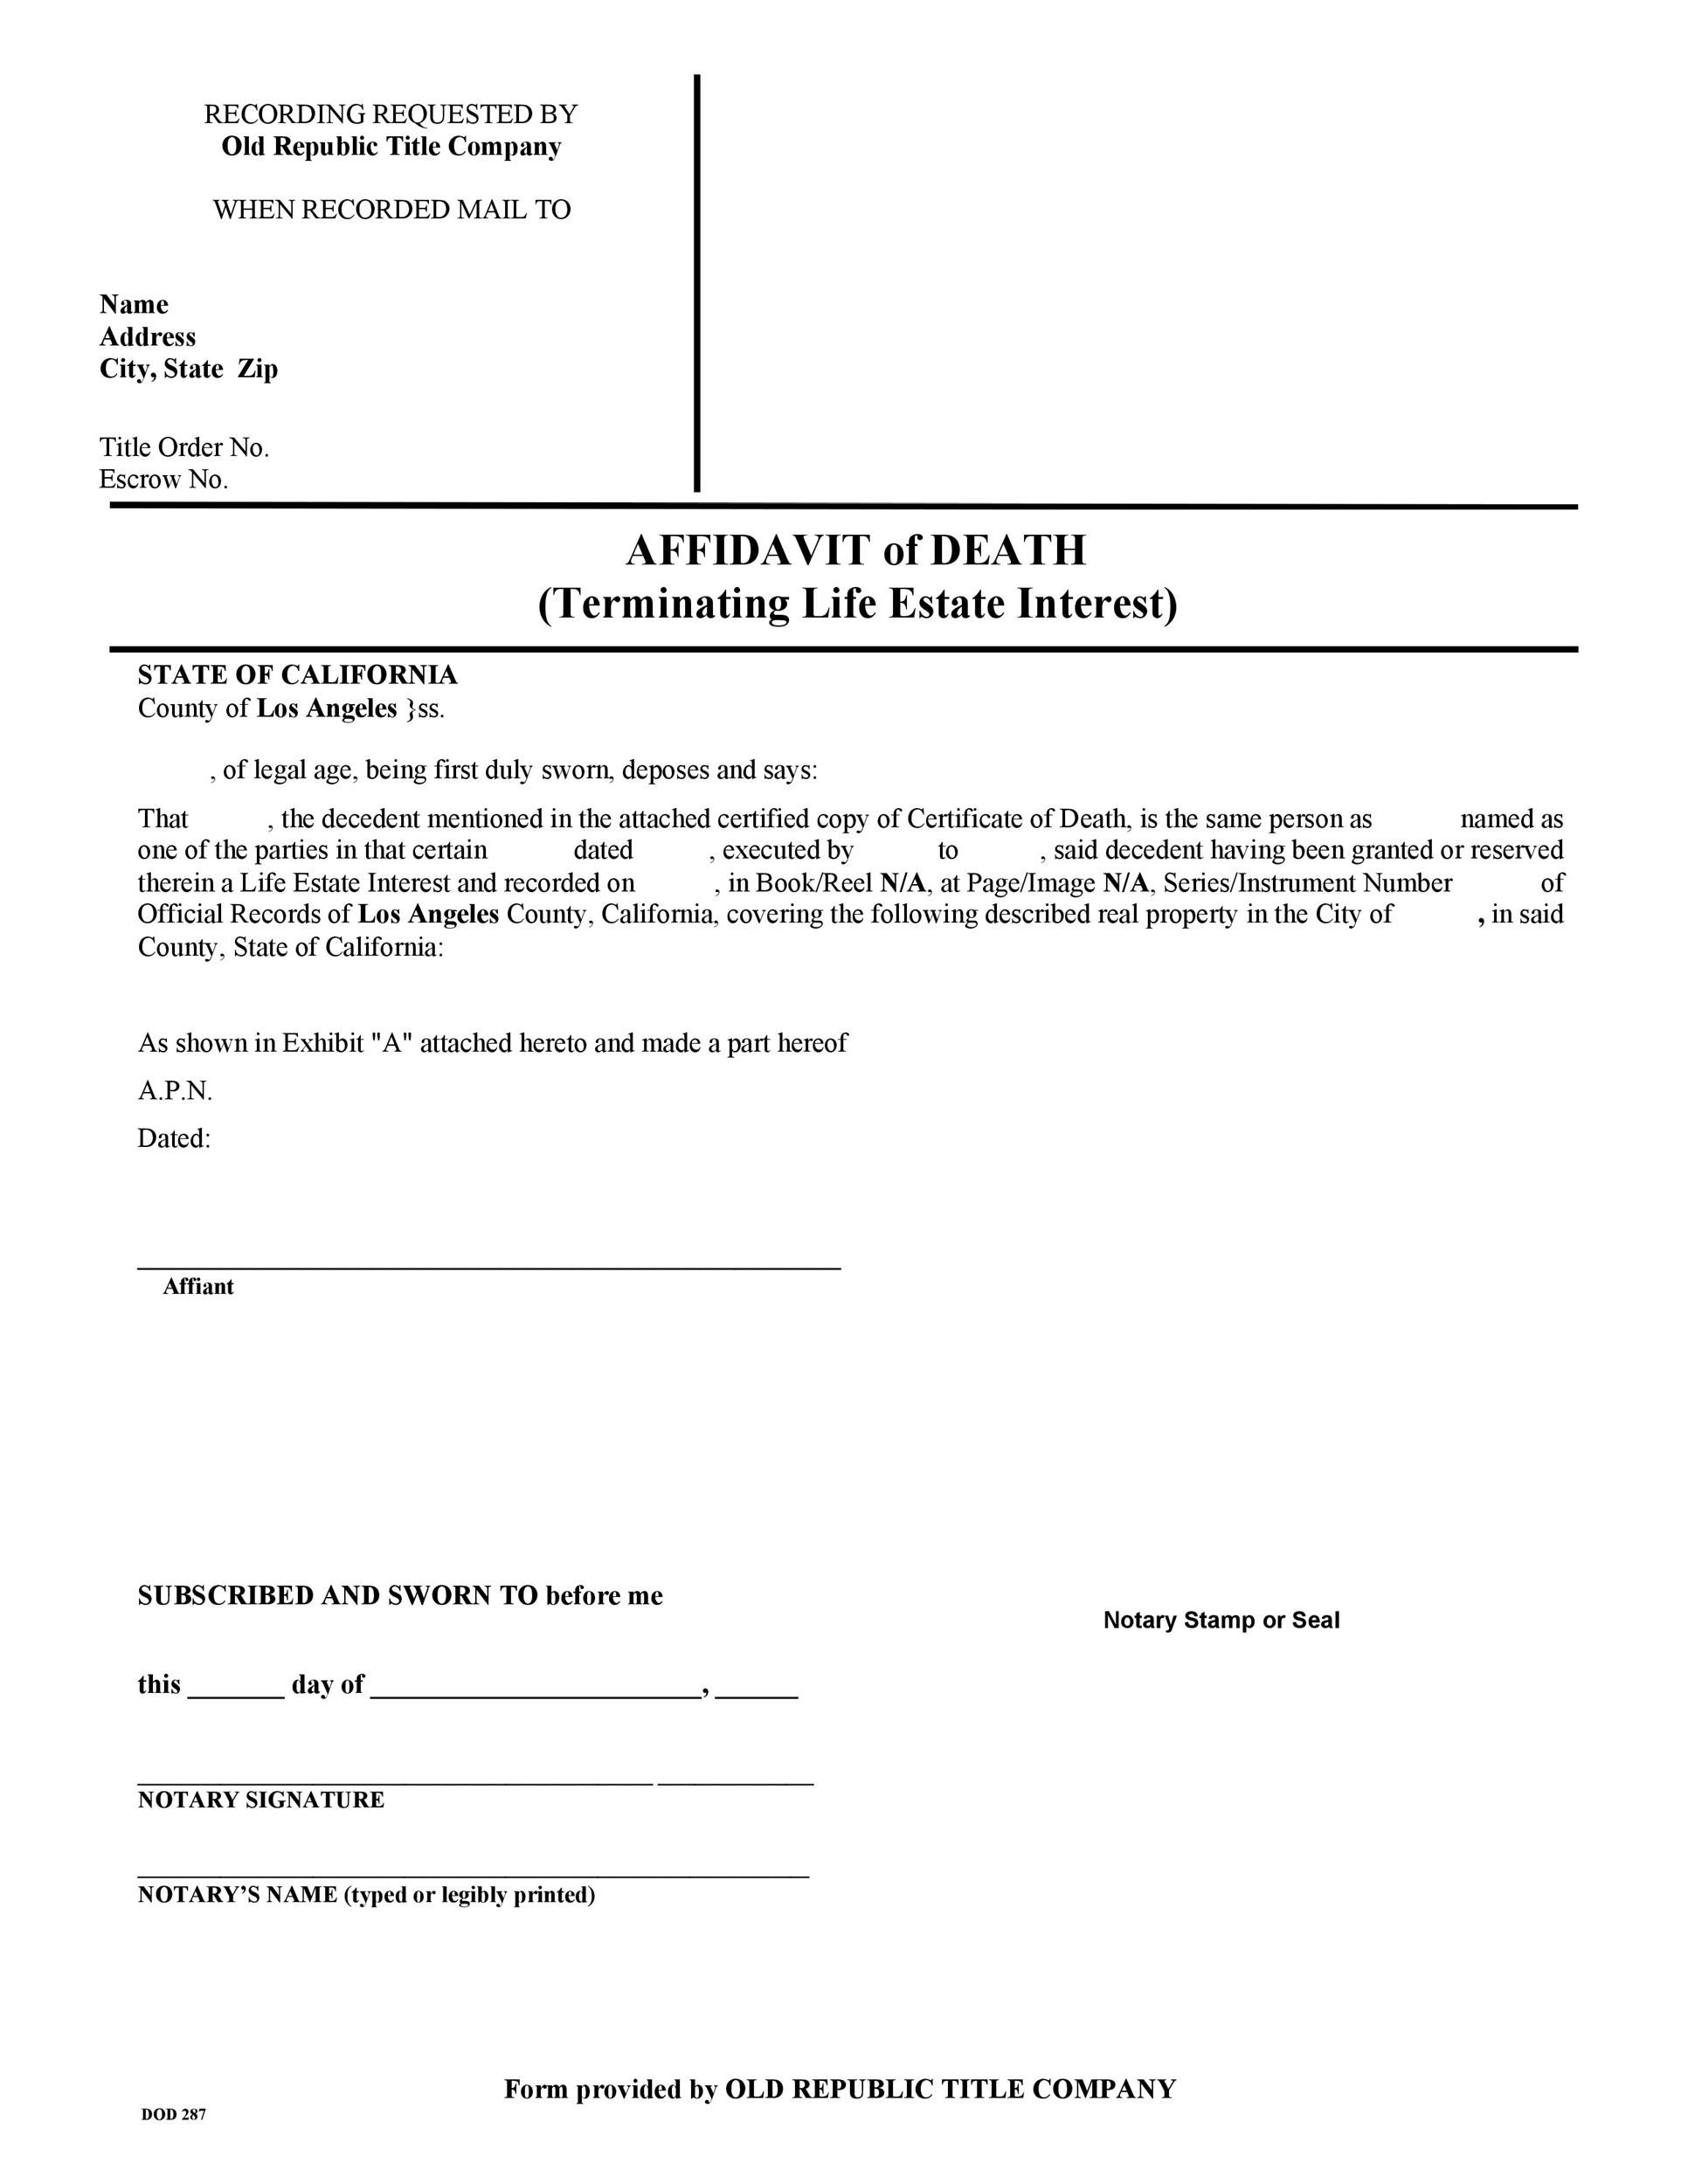 Free affidavit of death 07